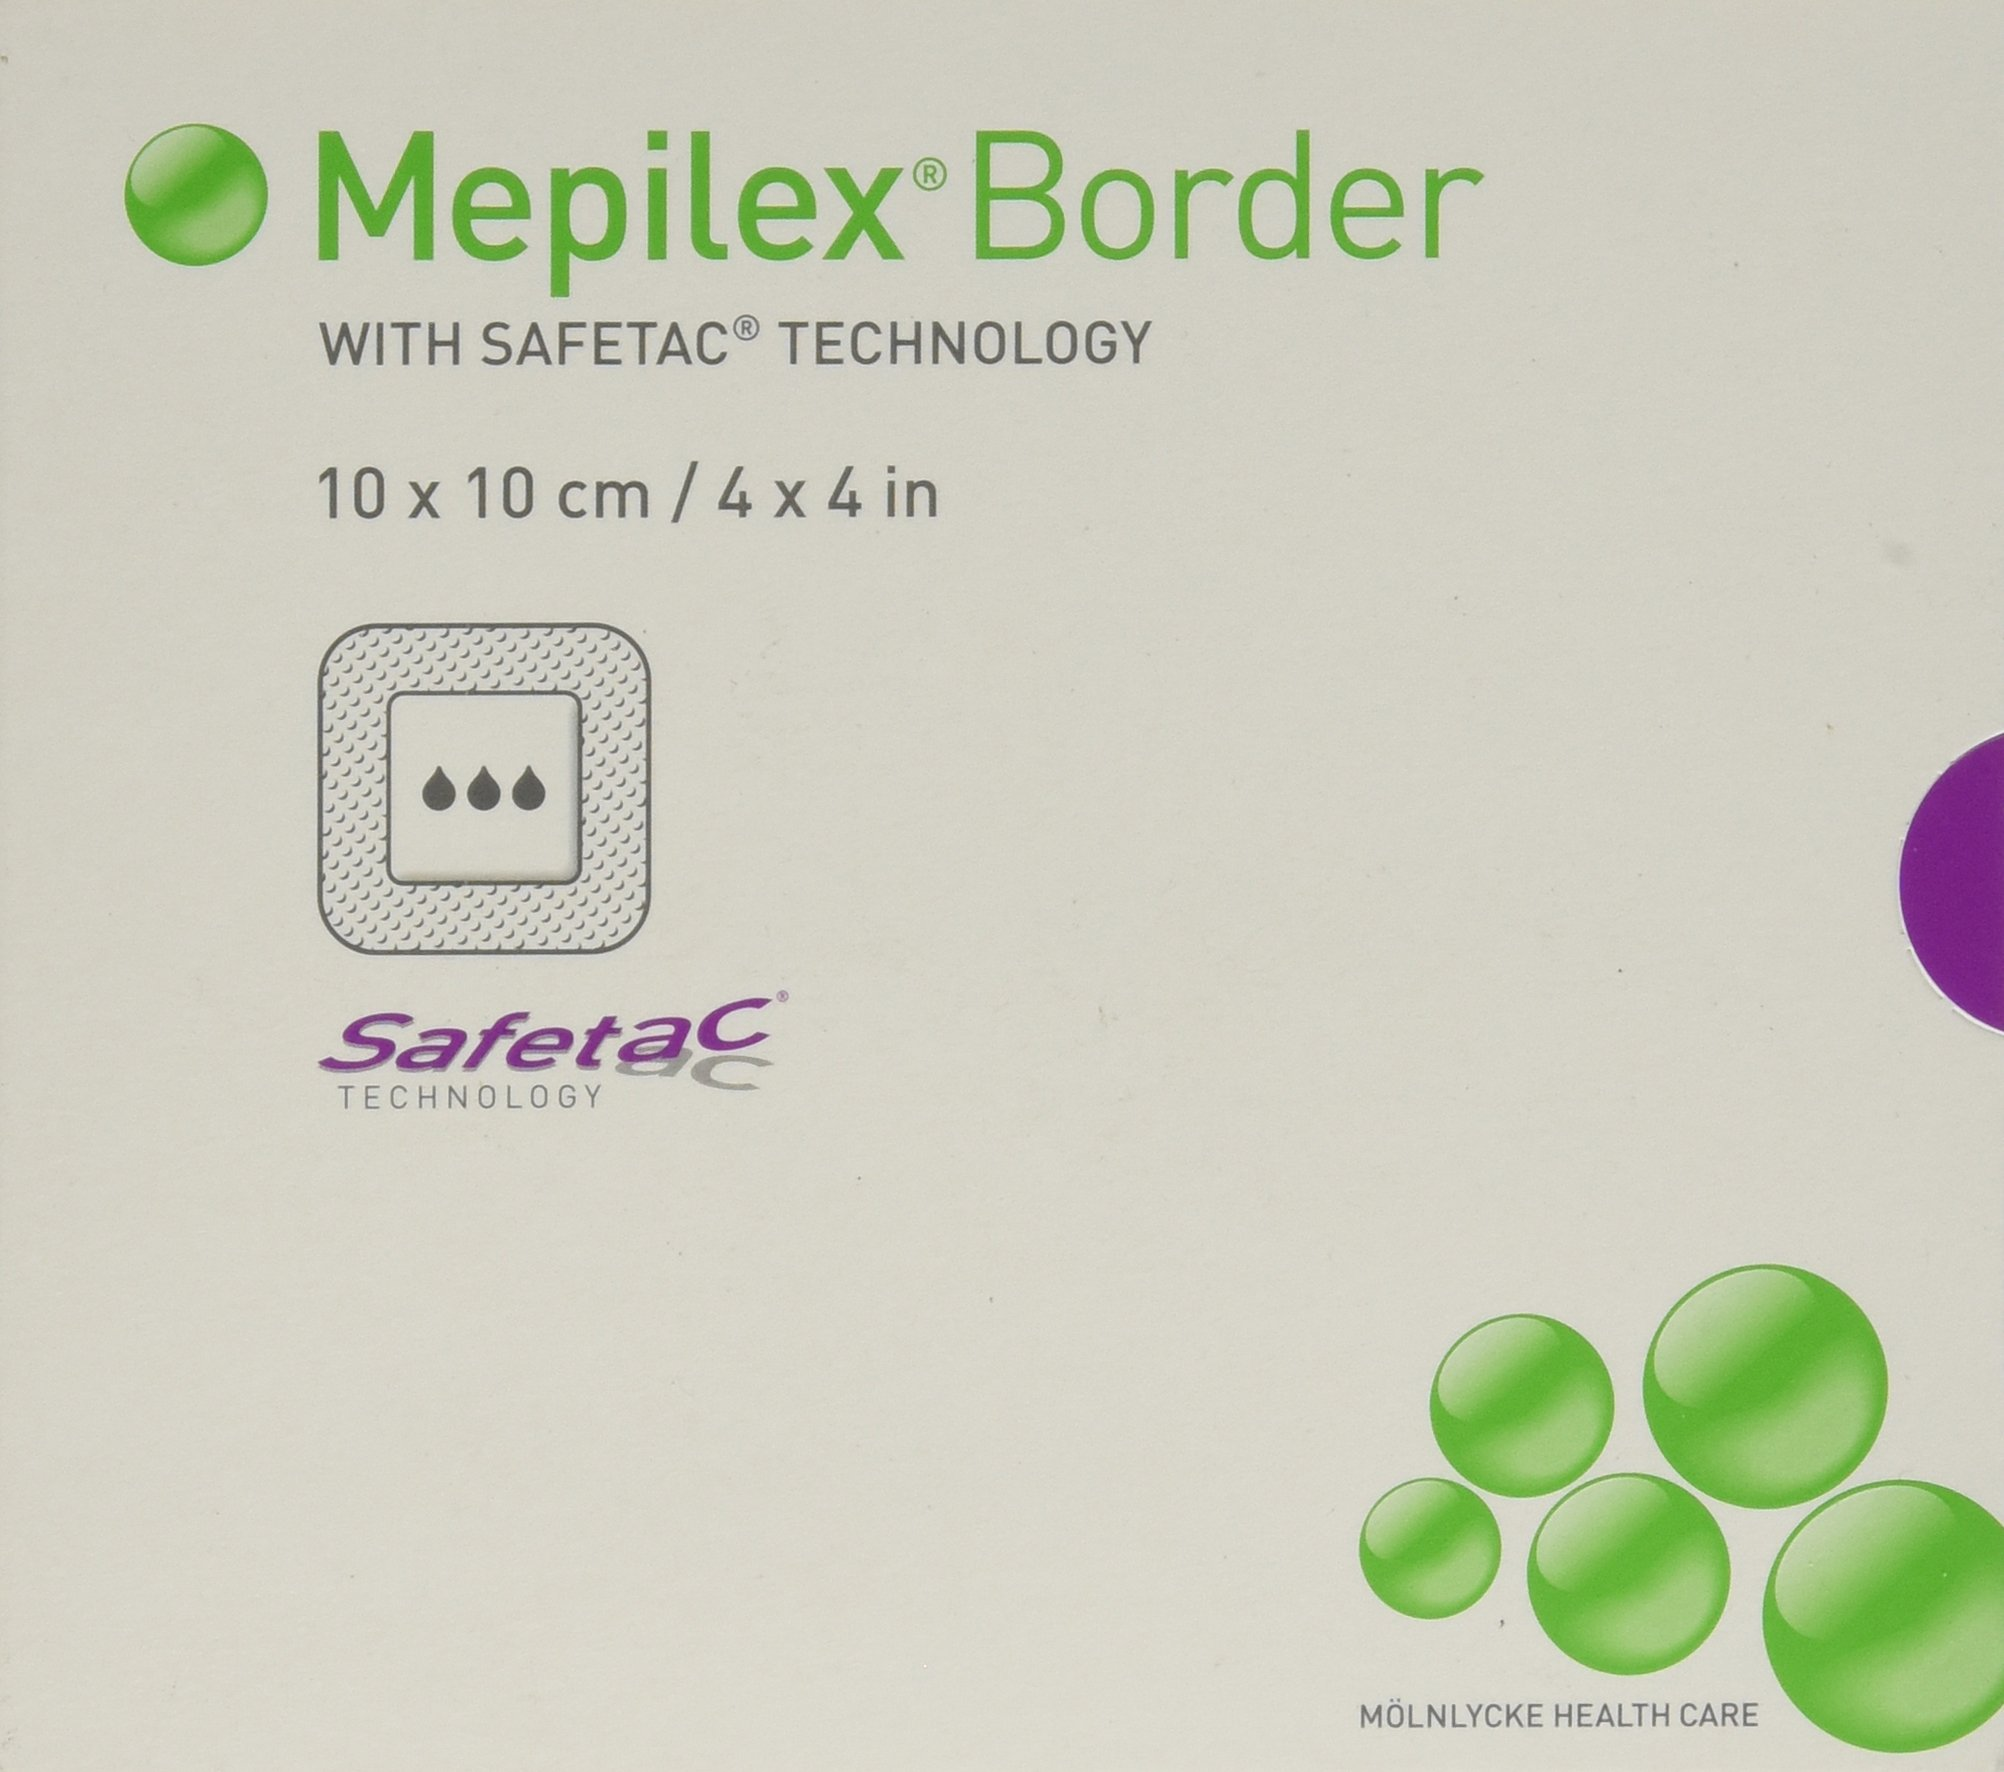 Mepilex Border Self-Adhesive Foam Dressings 4''x4'', Box of 5